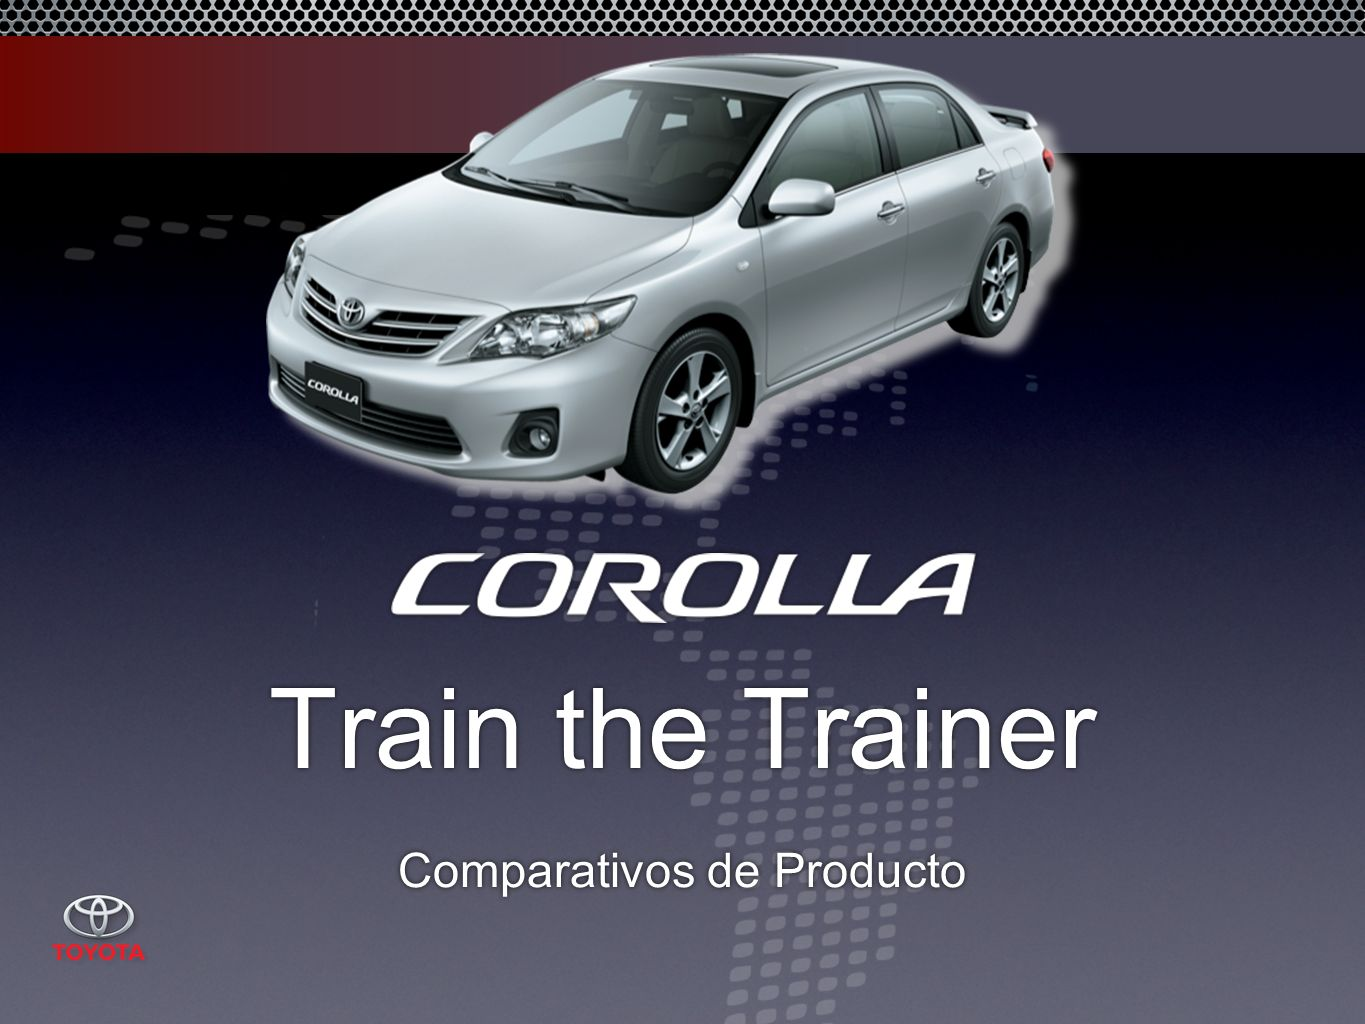 Train the Trainer Comparativos de Producto